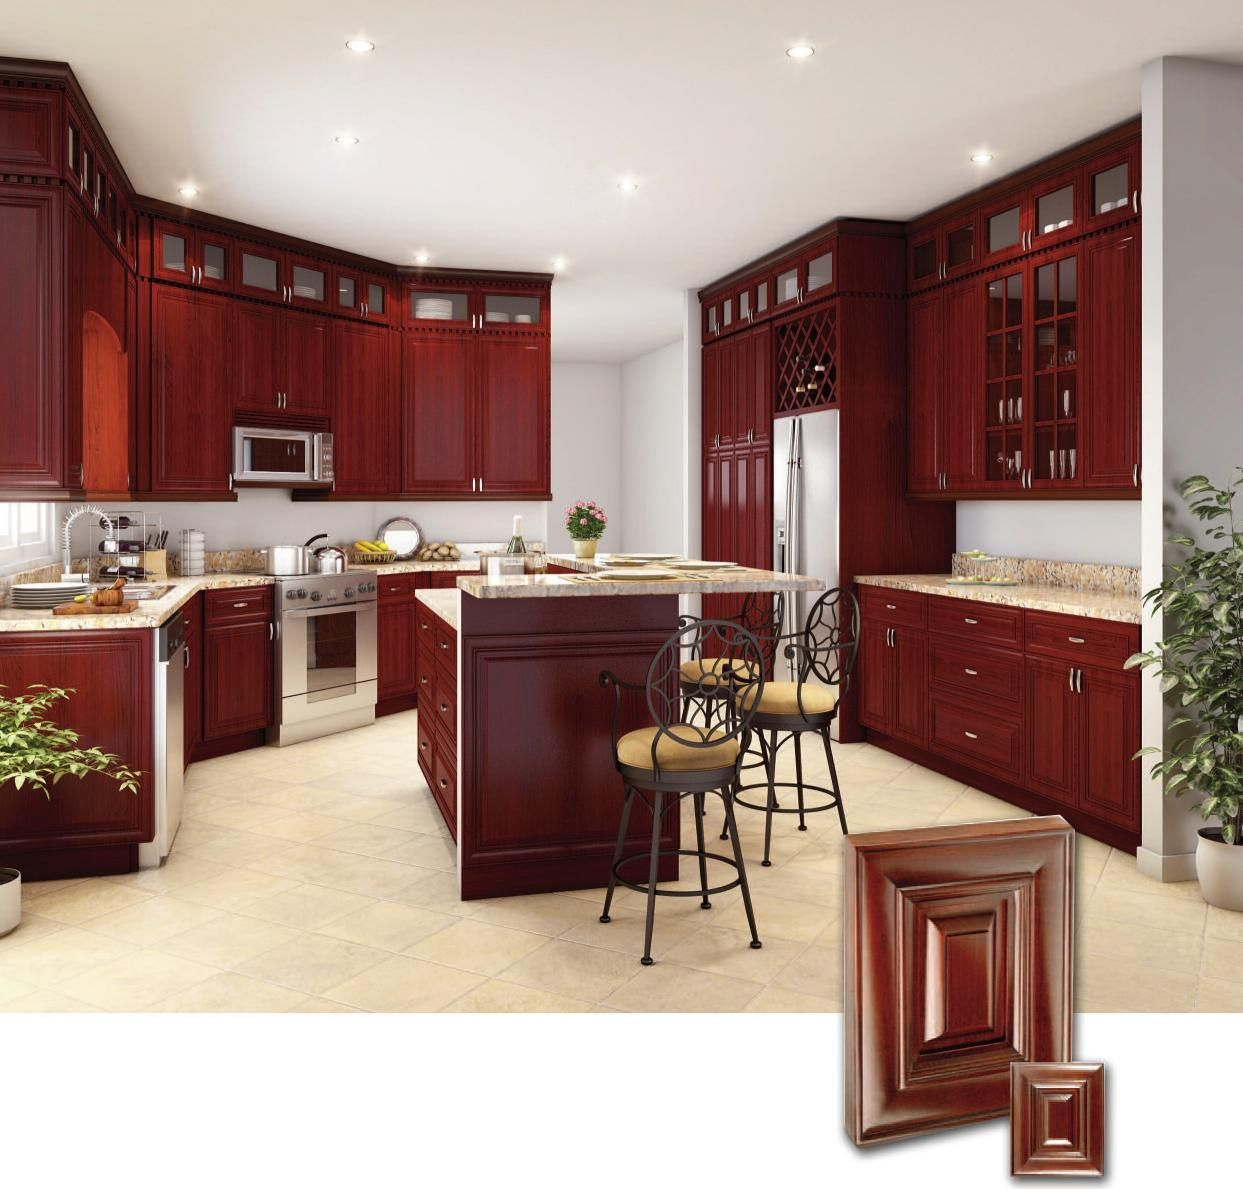 Kitchen Ideas Cherry Colored Cabinets dark cherry wood kitchen cabinets |  cherry cabinets wallpaper